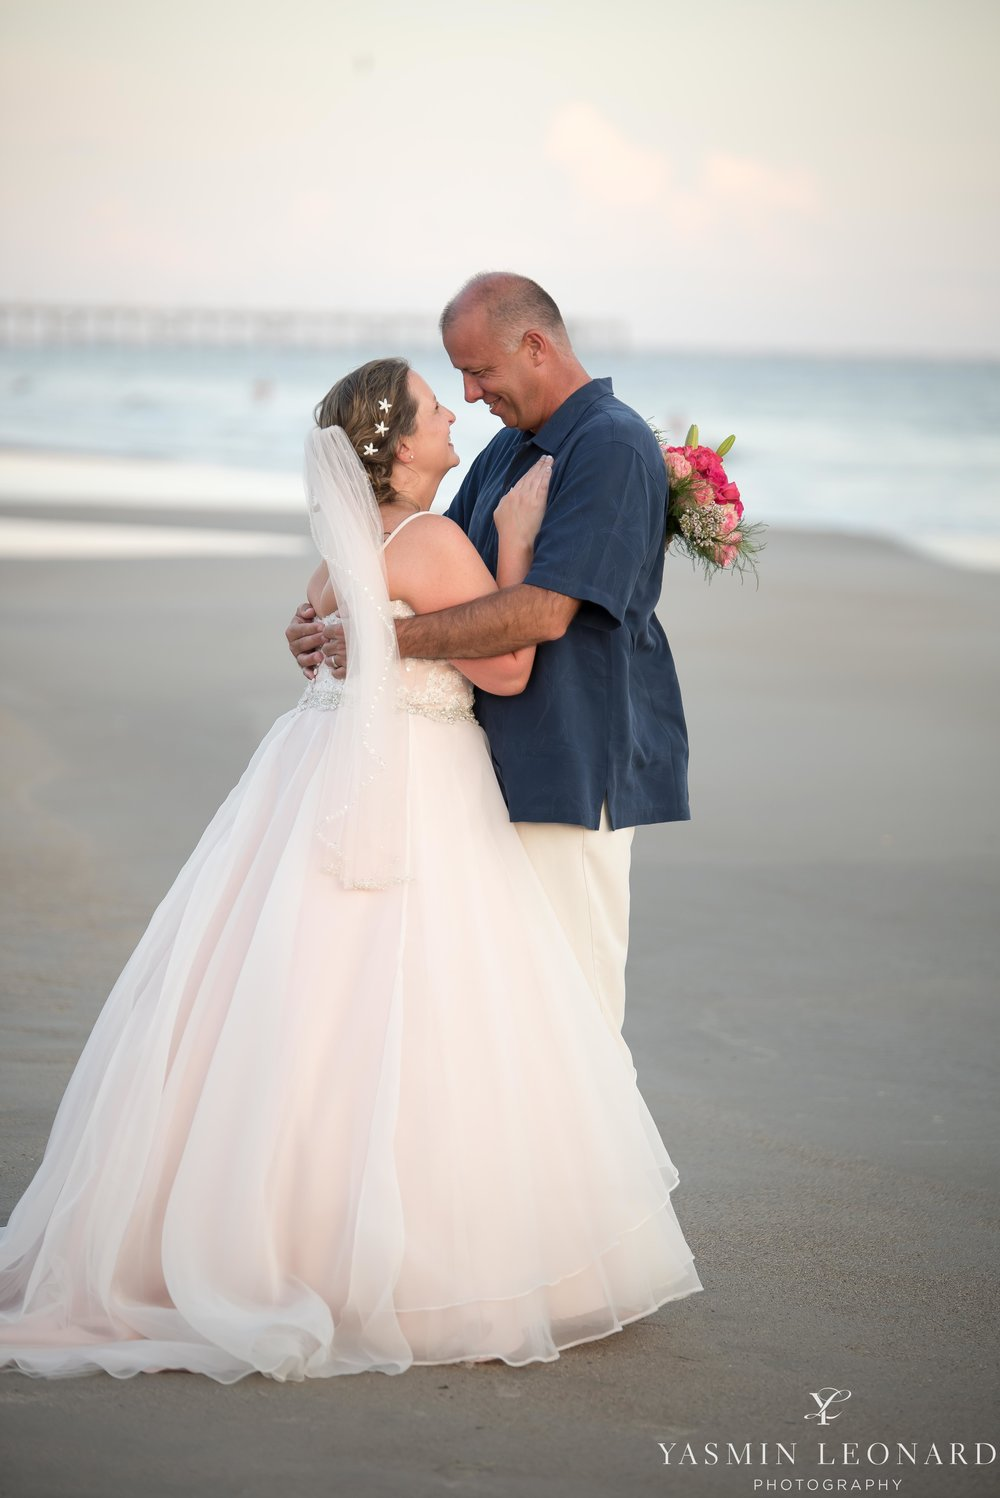 Oak Island _ Oak Island Wedding _ Beach Wedding_NC Beach Wedding_NC Destination Photographer_NC Wedding Photographer_Yasmin Leonard Photography_Beach Themed Wedding-35.jpg